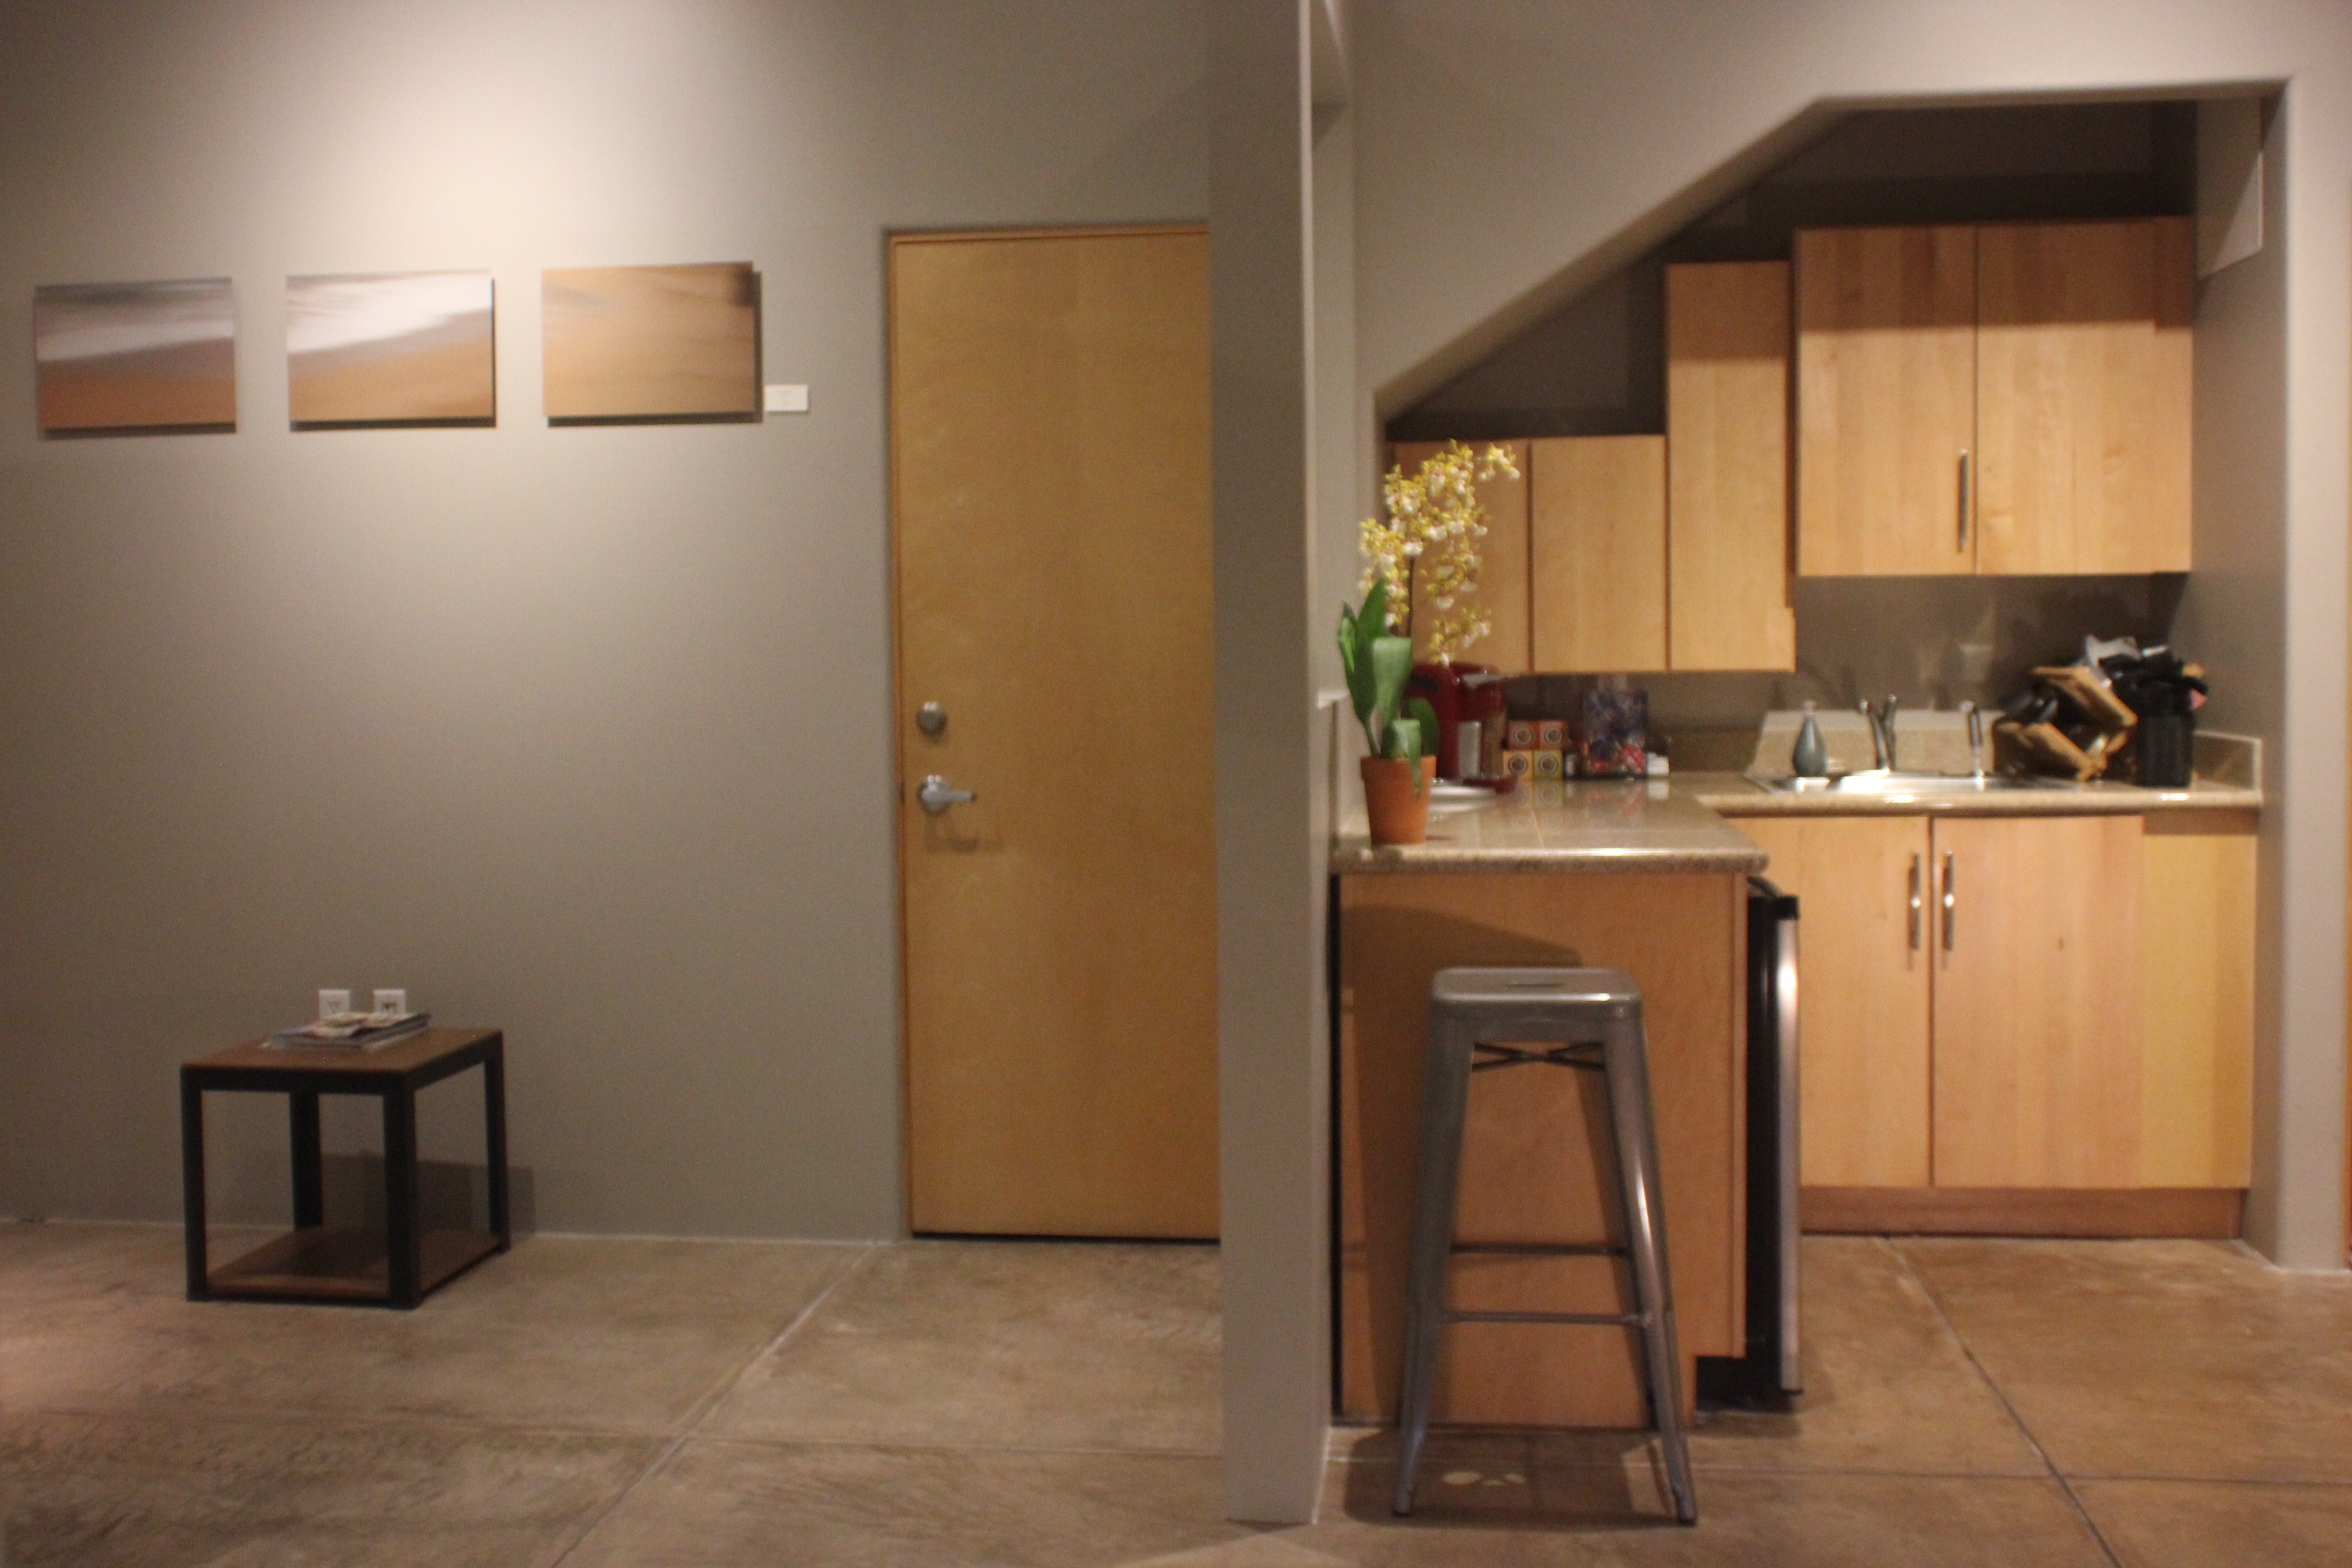 marquez-place-lofts-for-sale-in-santa-fe-img_1045-2